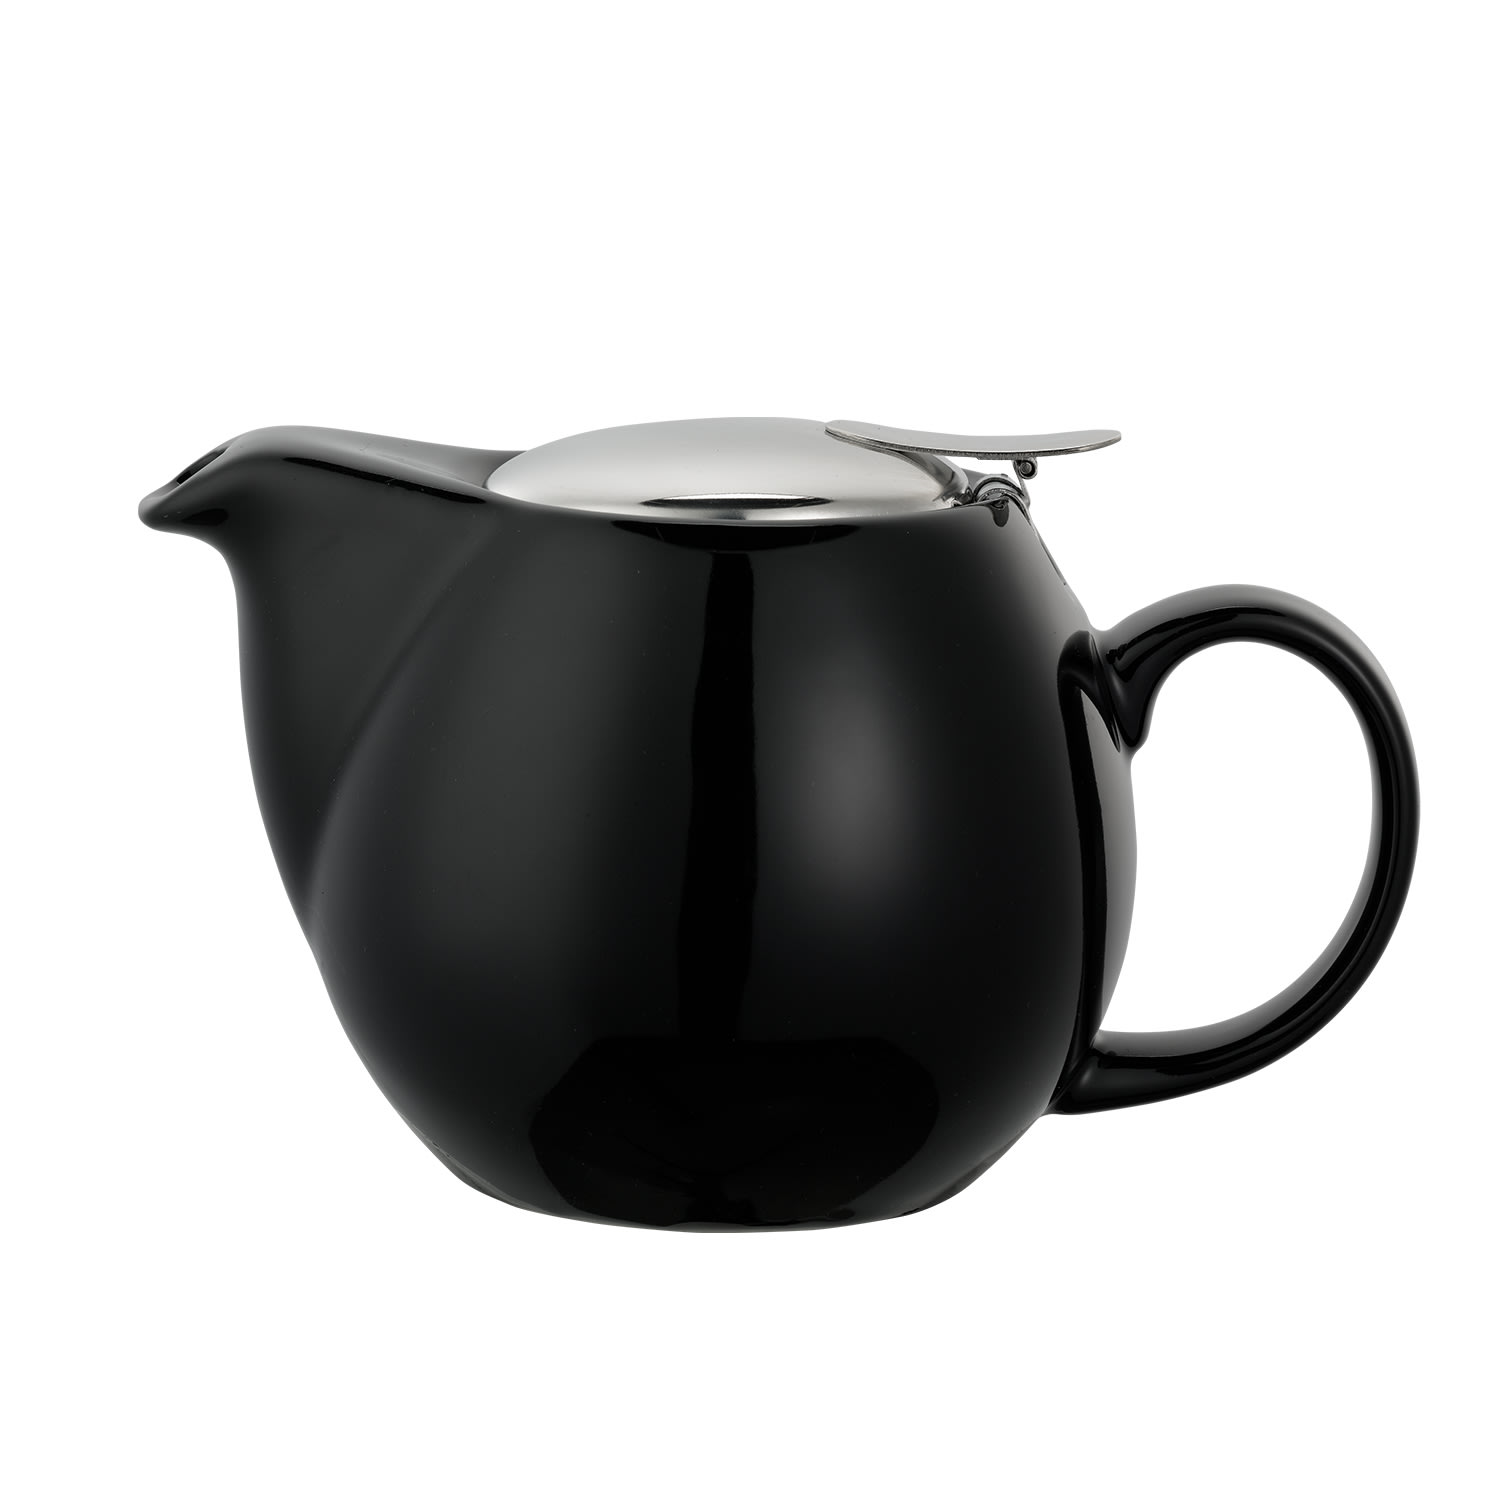 Service Ideas TPCV16BL 16 oz Oval-Style Teapot w/ Lid & Infuser Basket, Black Ceramic